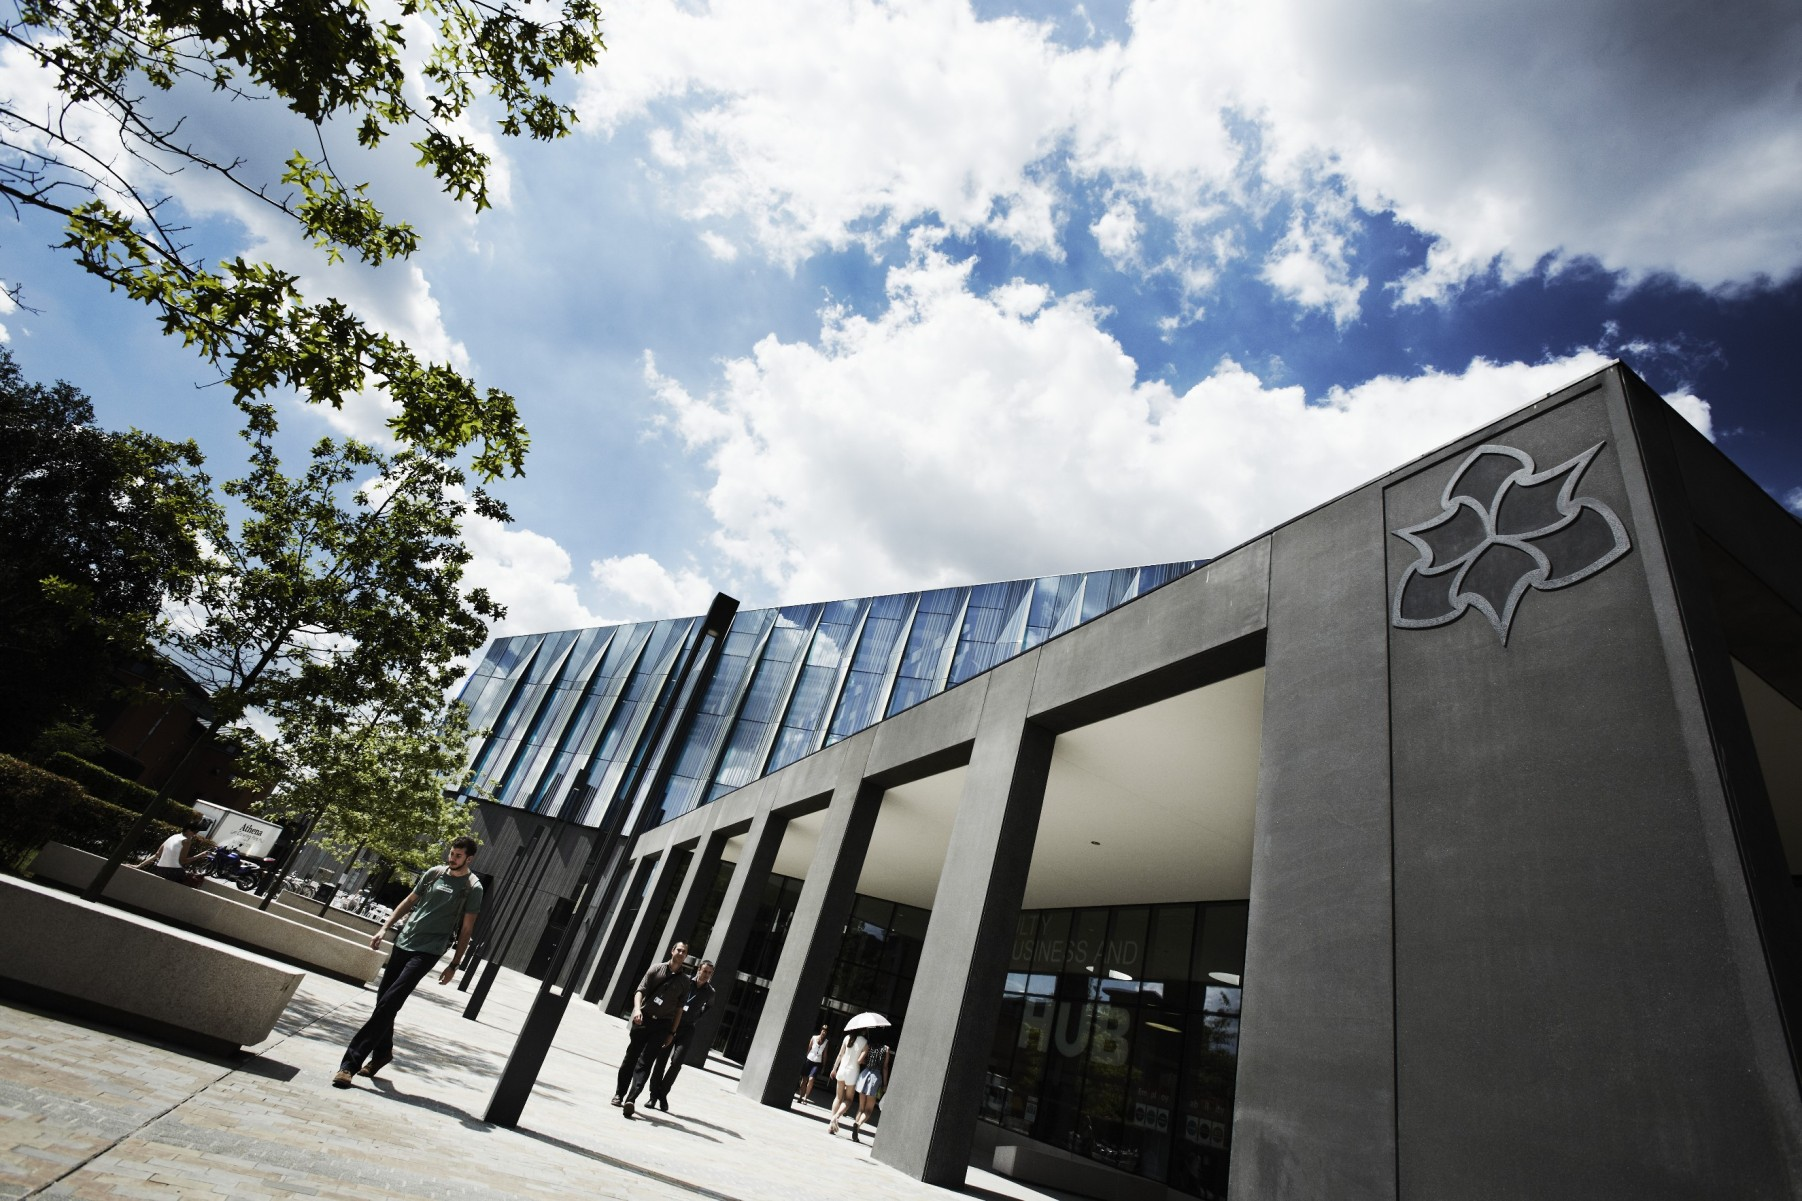 Manchester Metropolitan University and Cisco have launched a new digital innovation hub called thingQbator